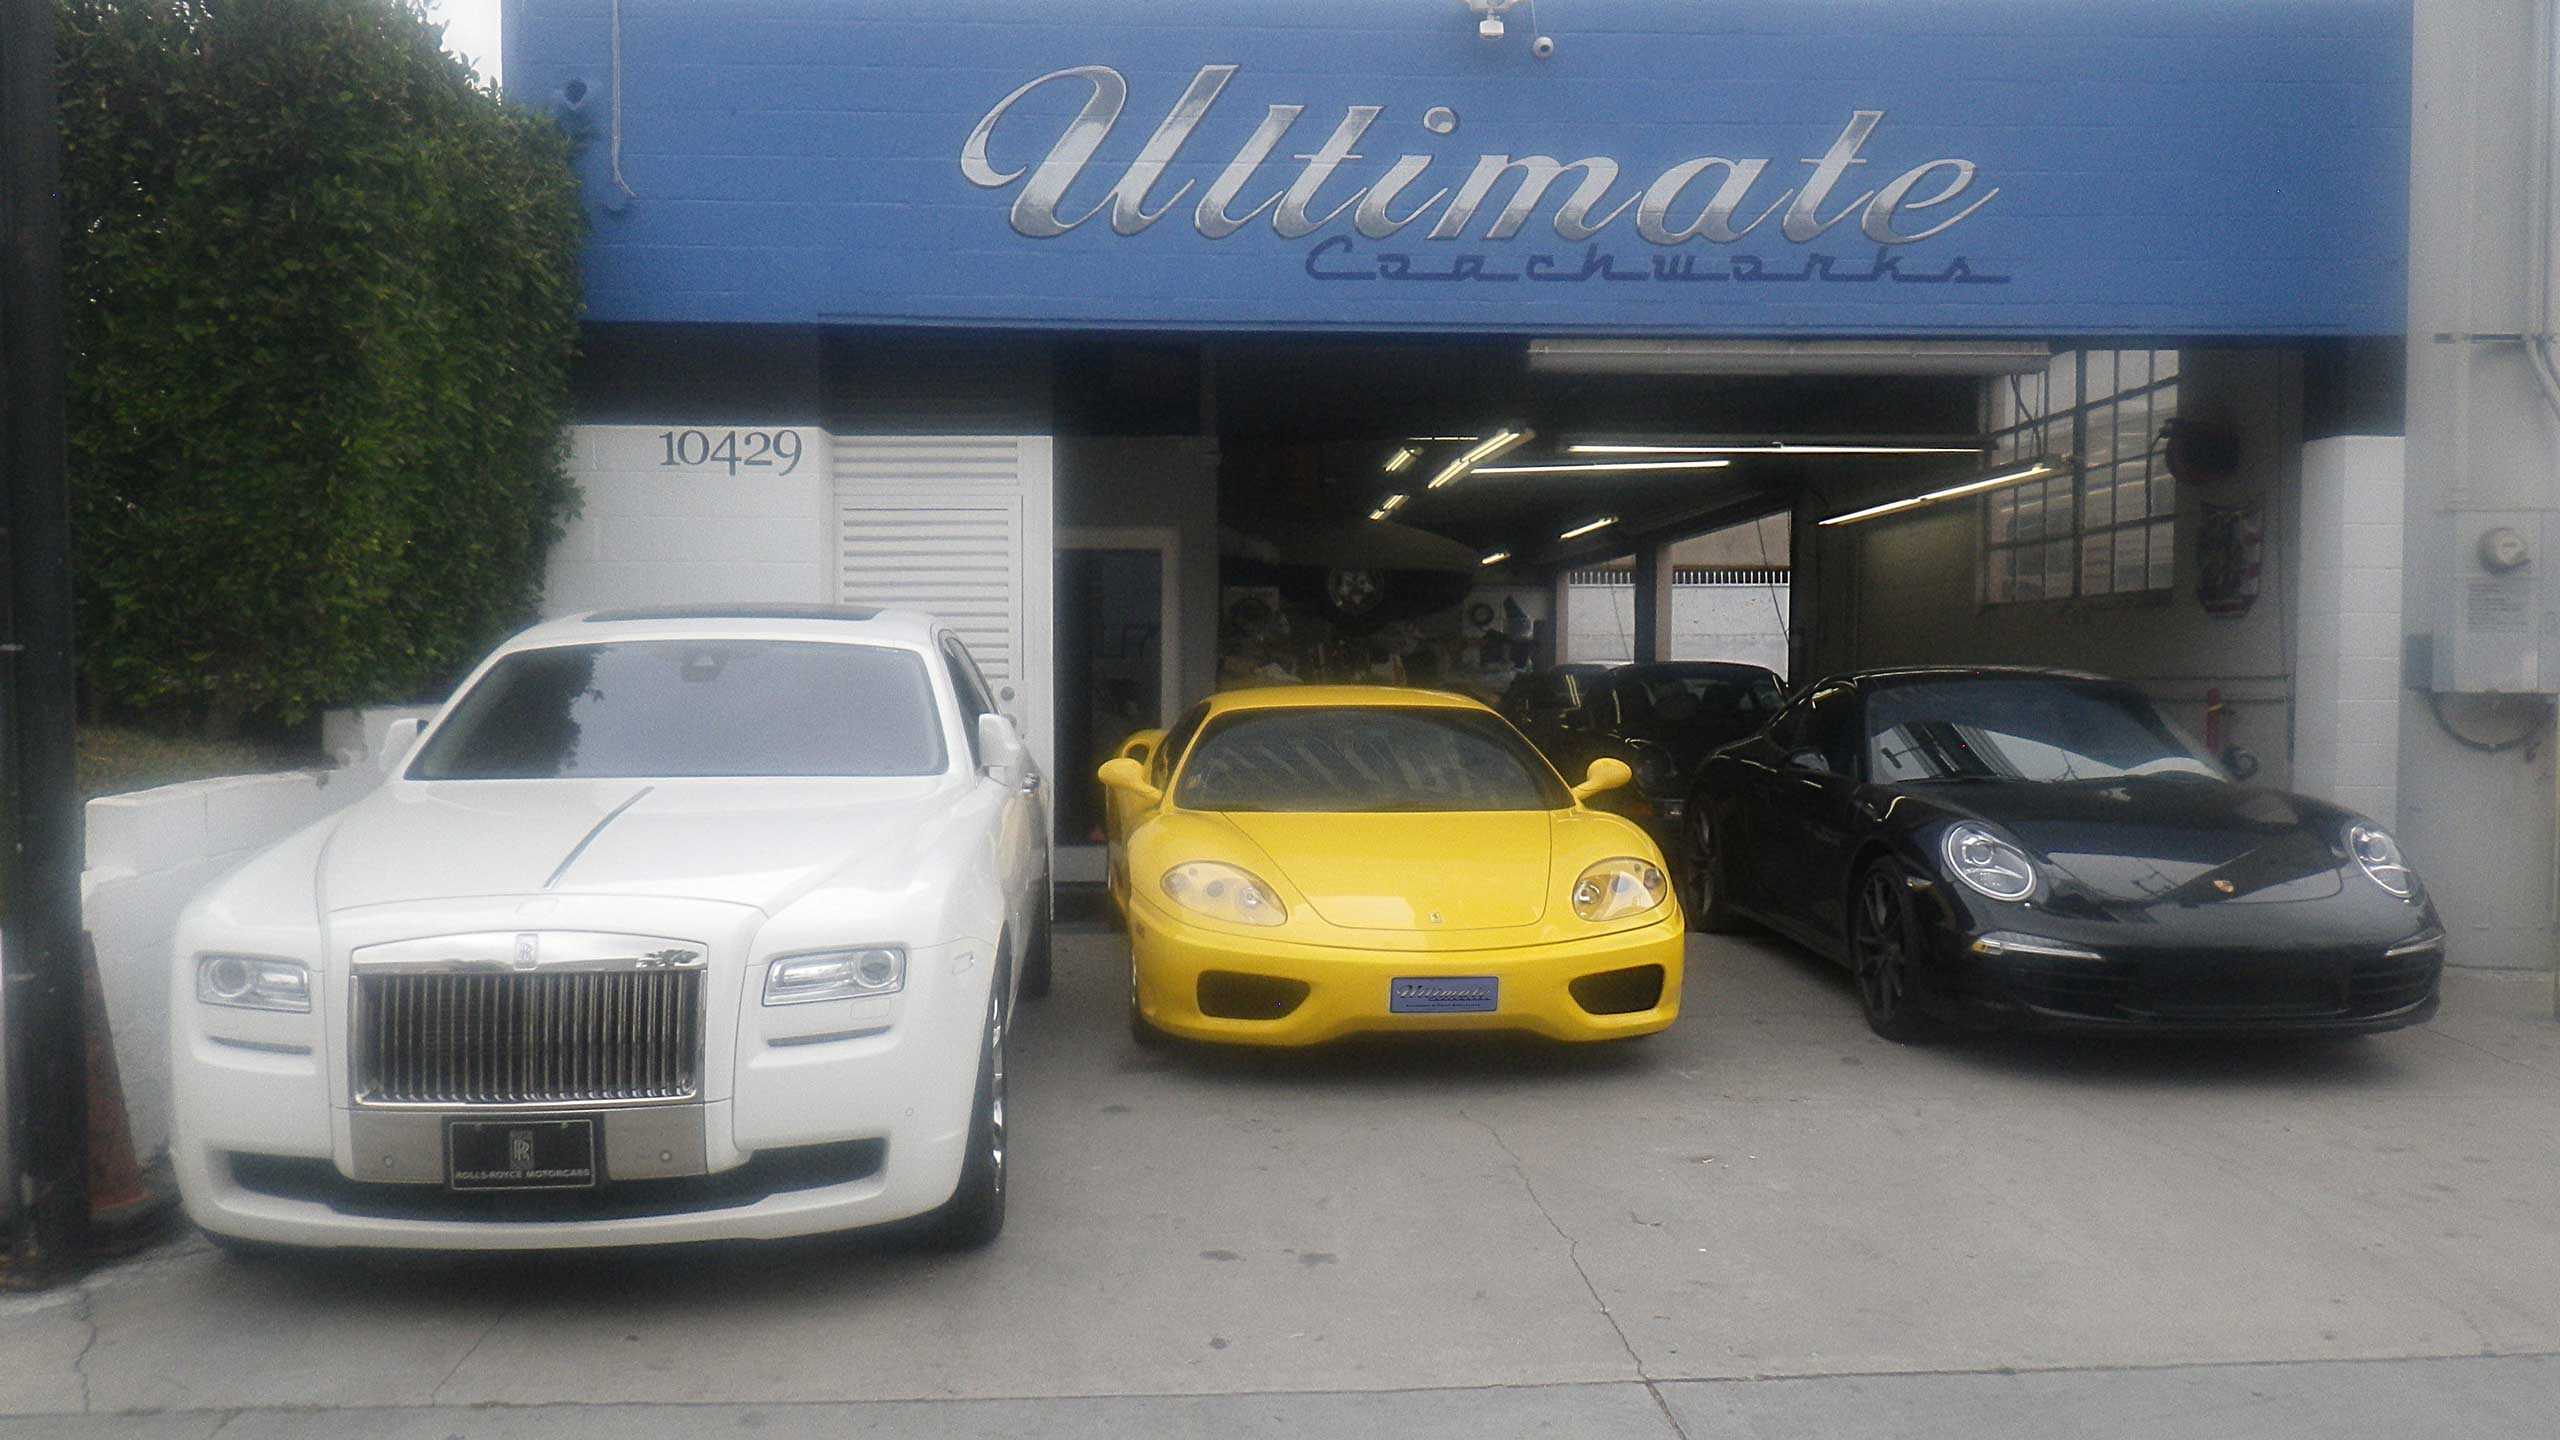 UC_3_car_front_storefront_2560x1440-002